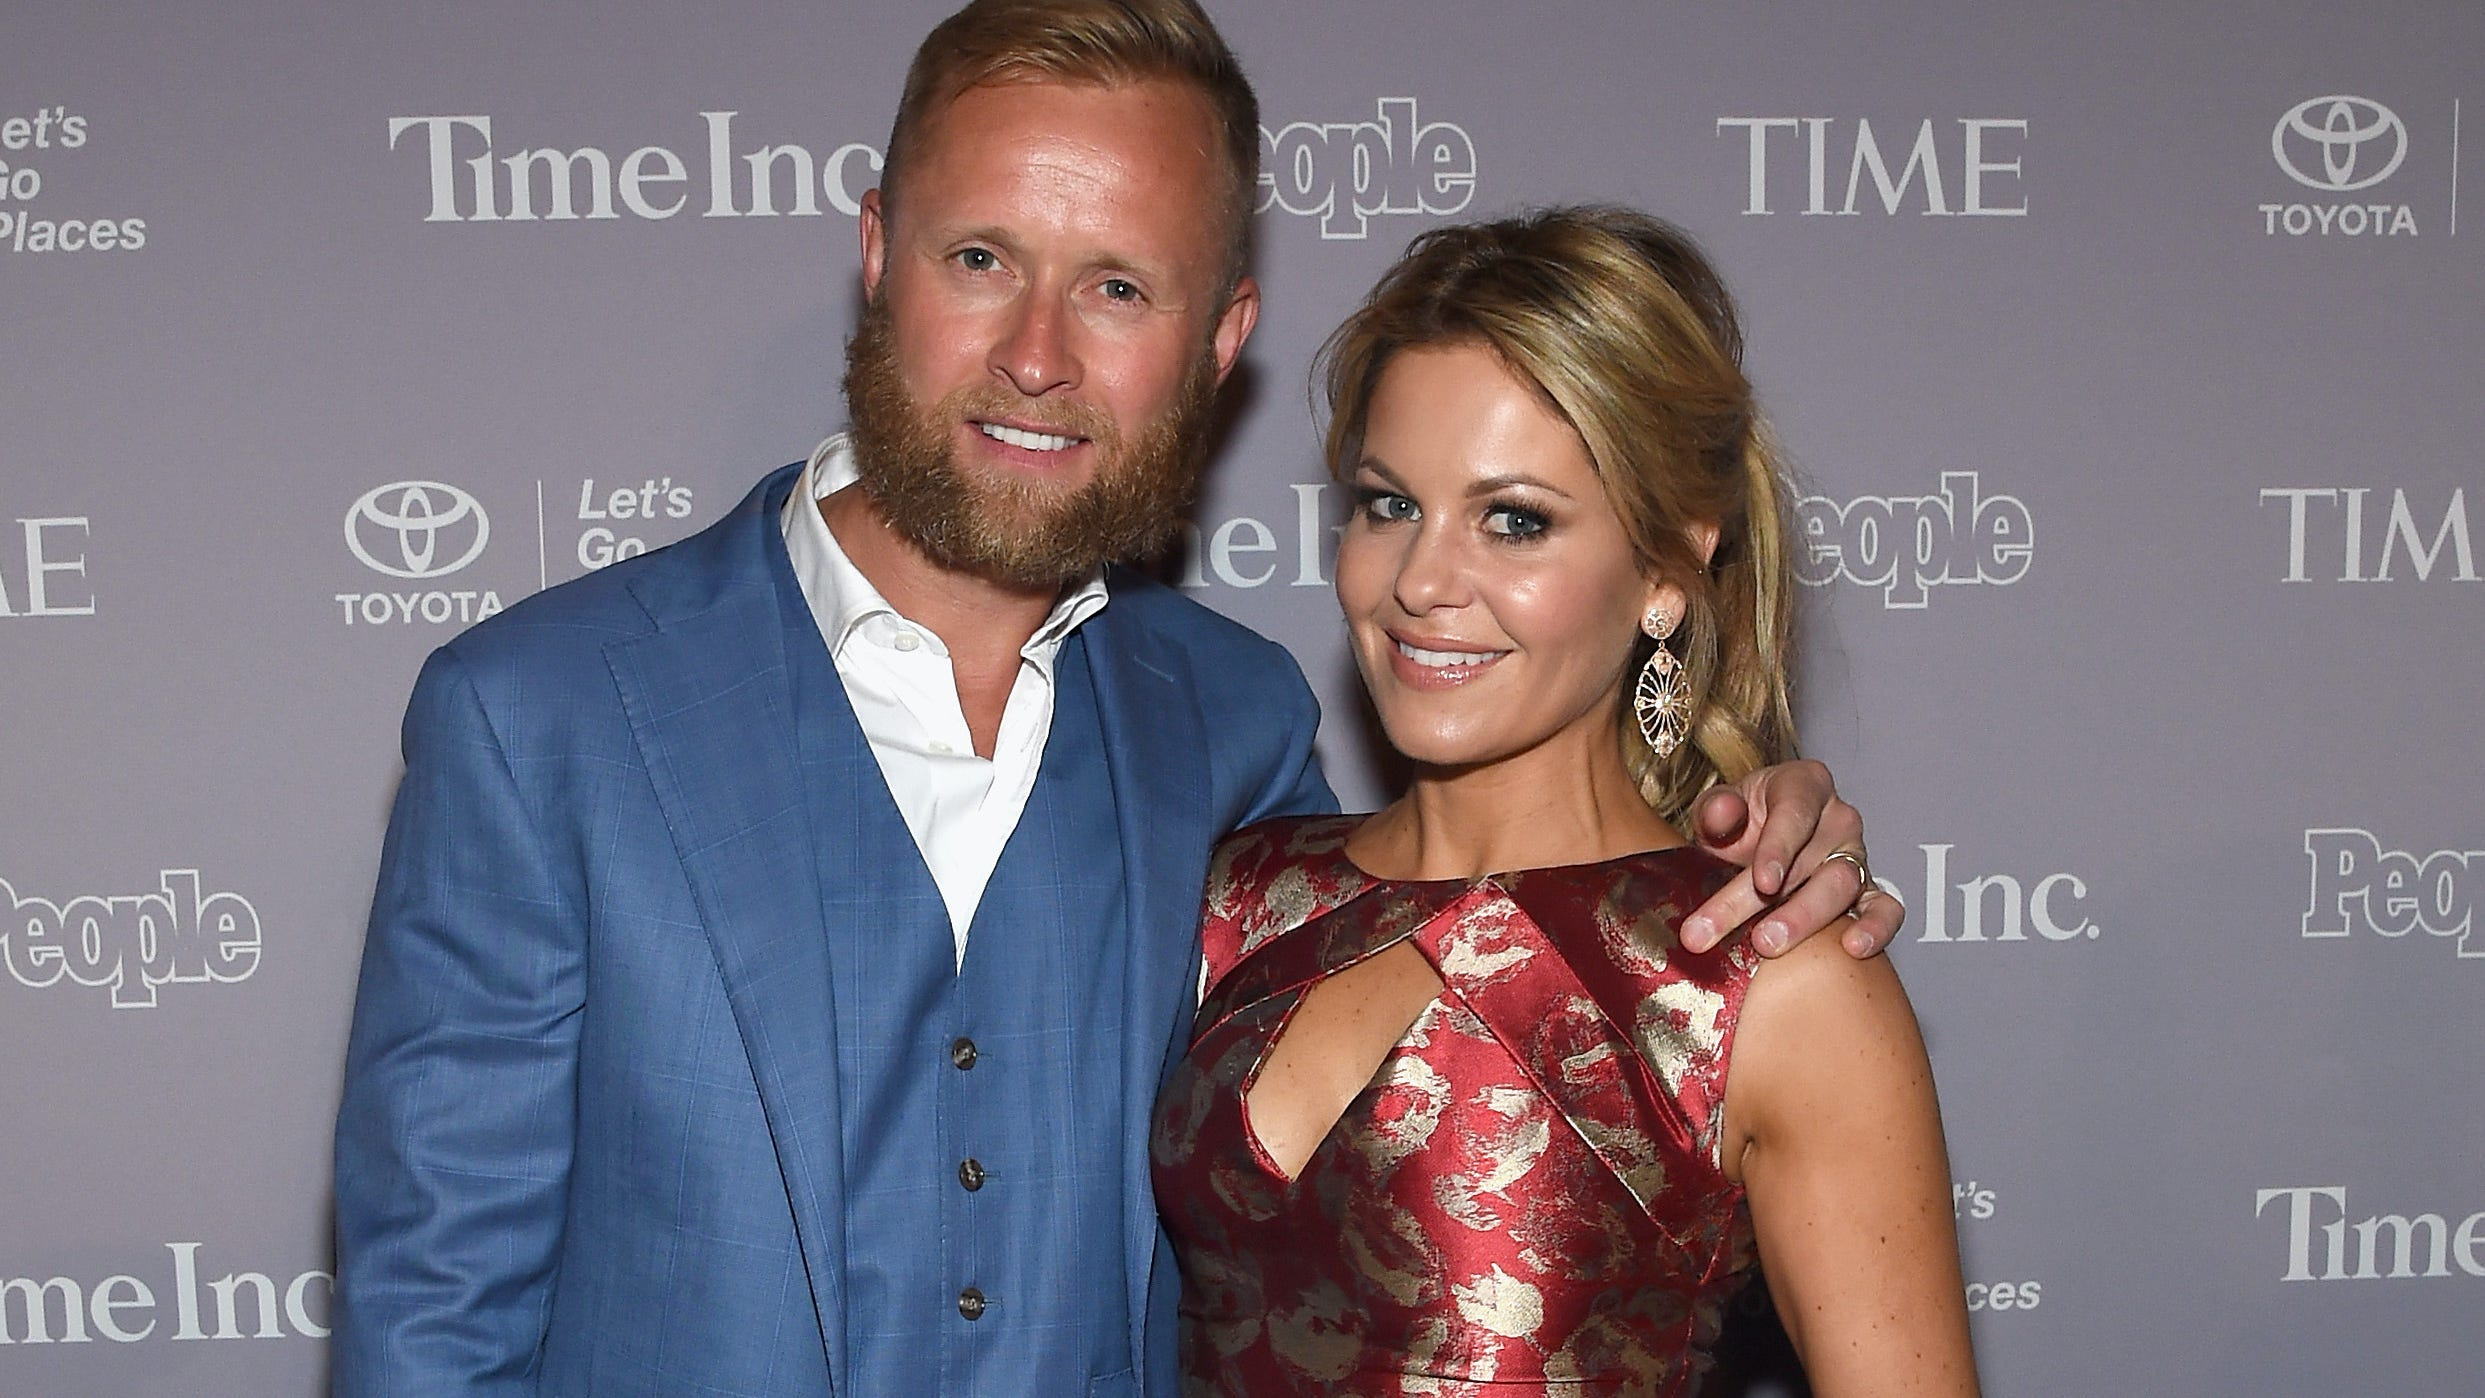 Candace Cameron Bure shares the 'secret' to her 25-year marriage to husband Valeri Bure